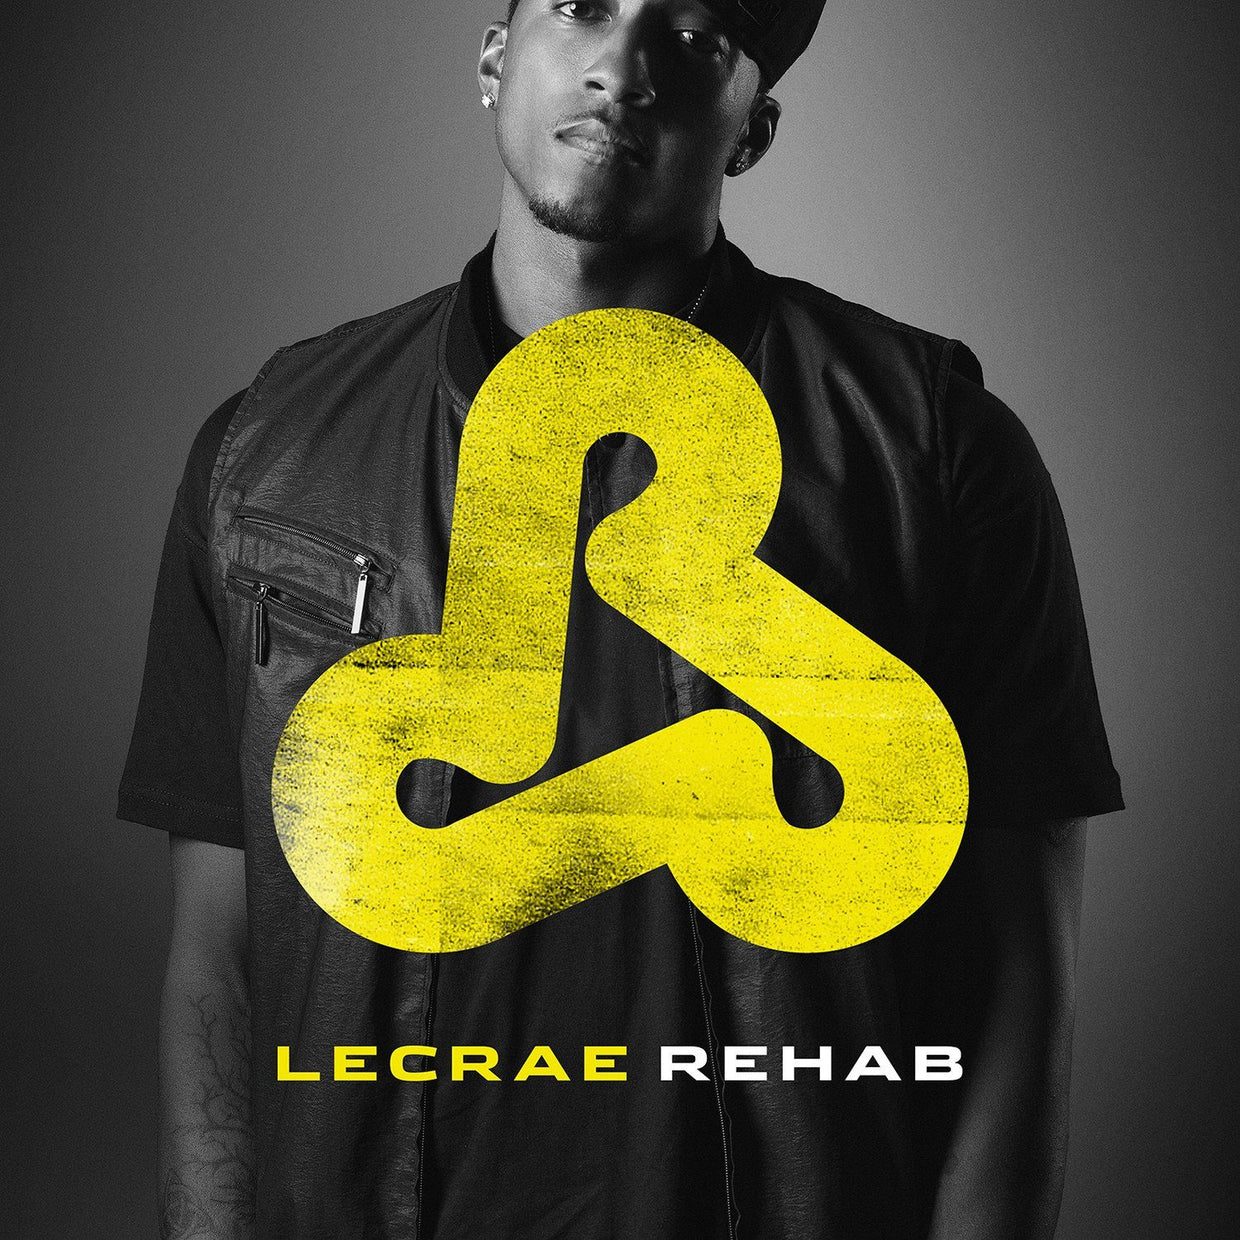 Reach Records Lecrae 'Rehab'